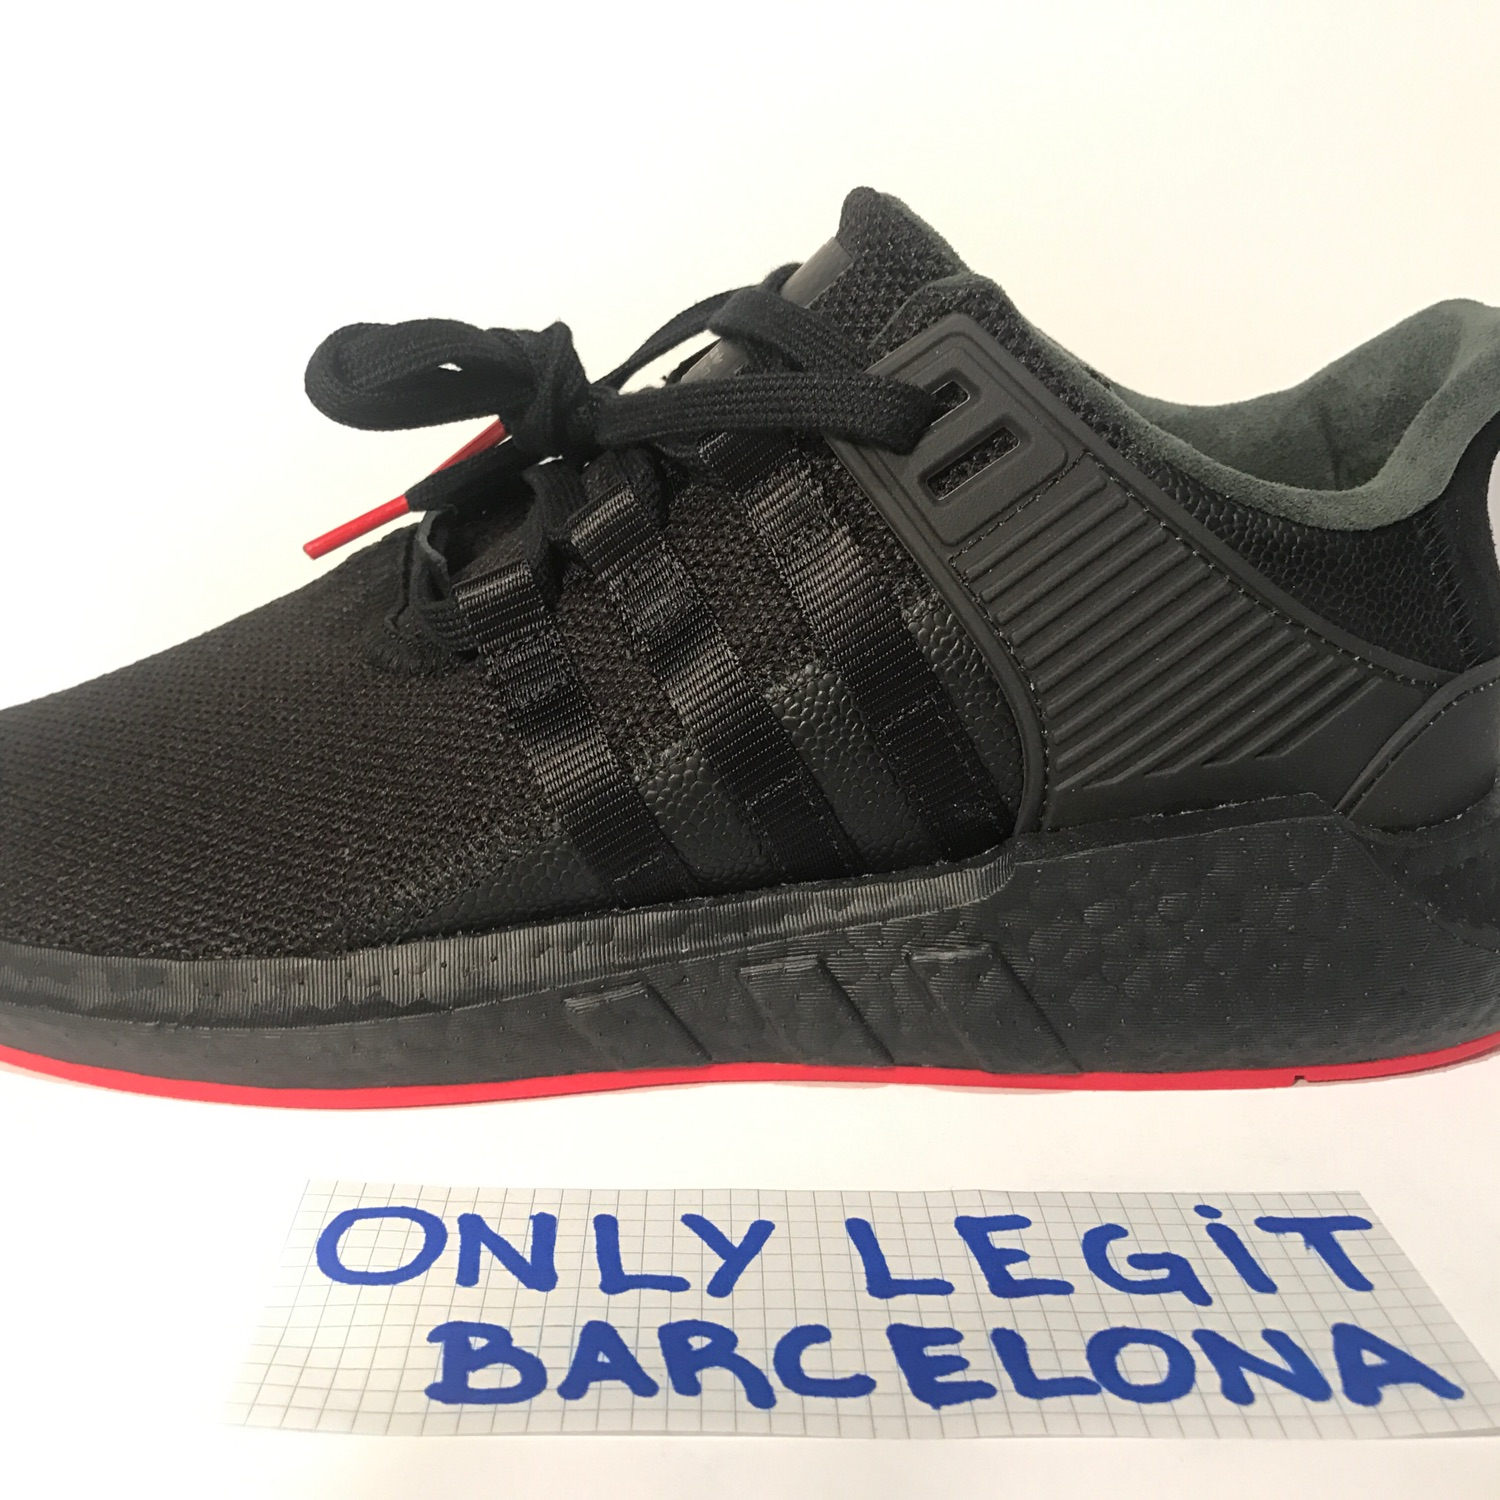 sneakers for cheap 6d71e 13107 Adidas Eqt Support 93/17 Red Carpet Black 12 Us